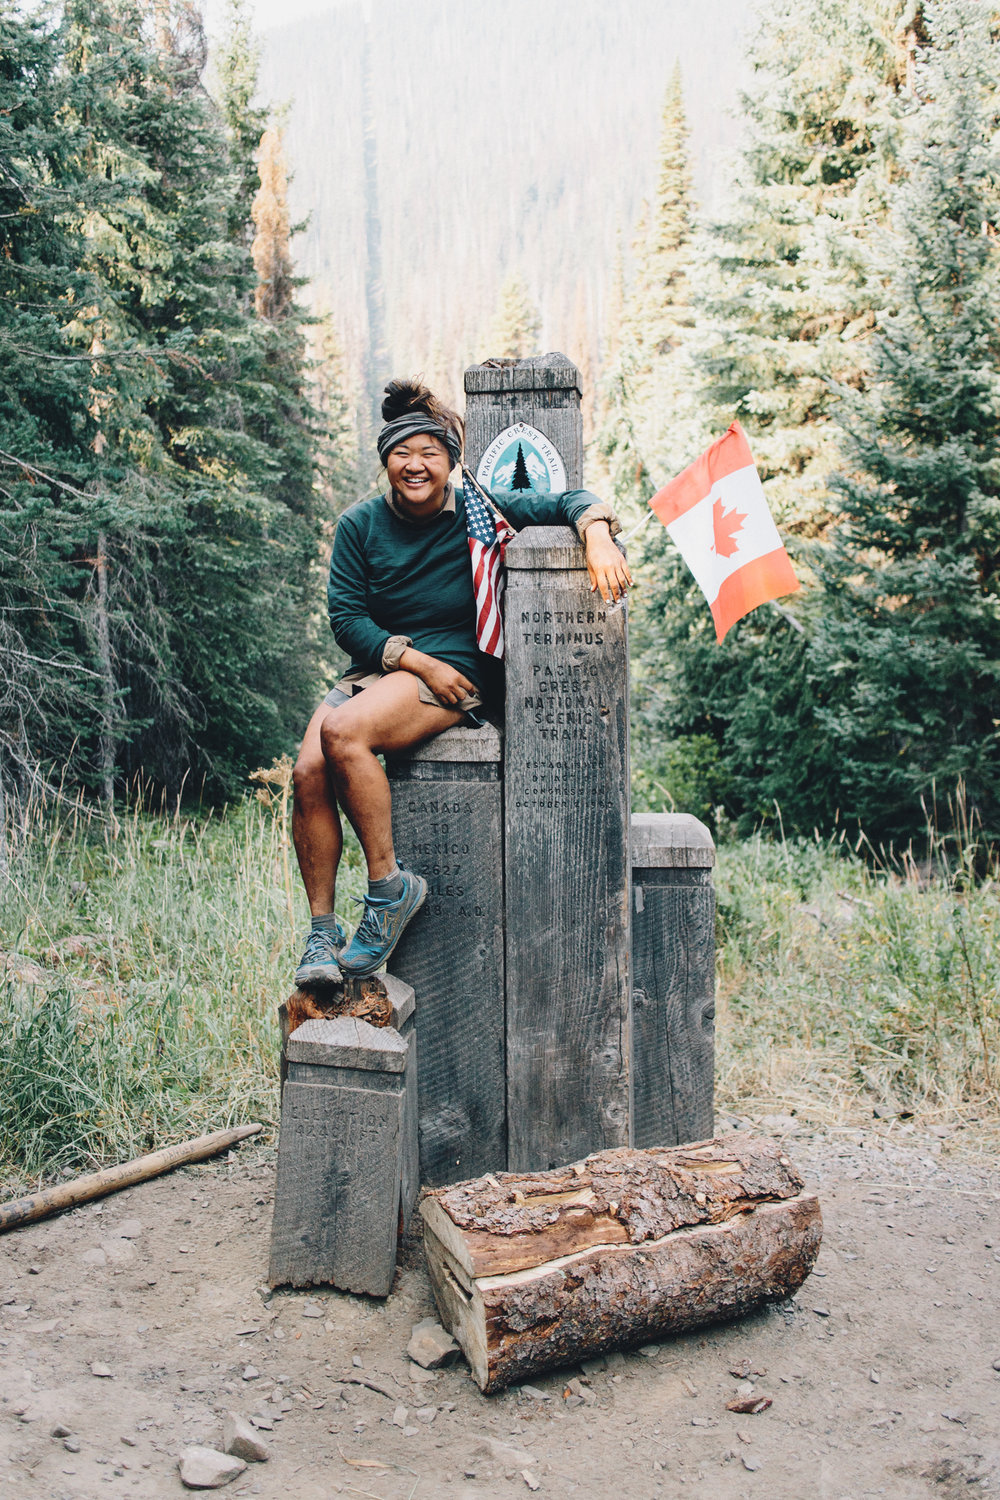 I finally made it to Canada after 171 days on trail.